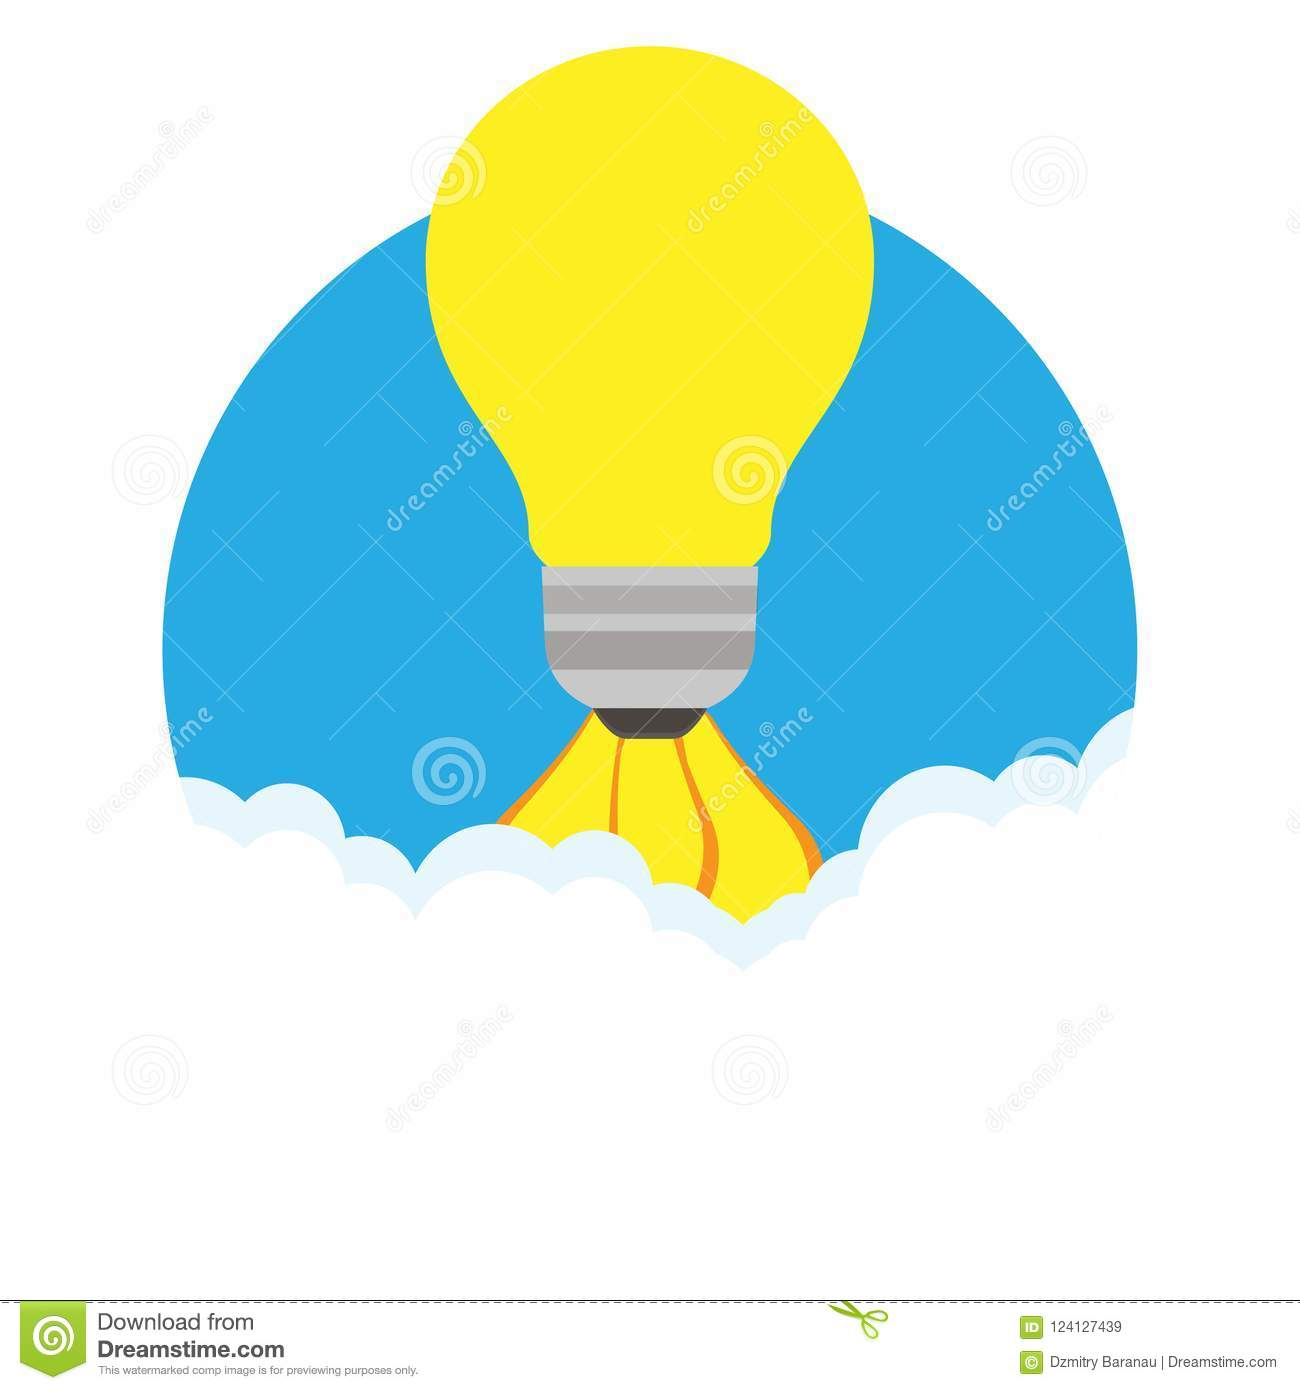 download find right idea cartoon management recruitment training riddle select employer interview promotion ideal